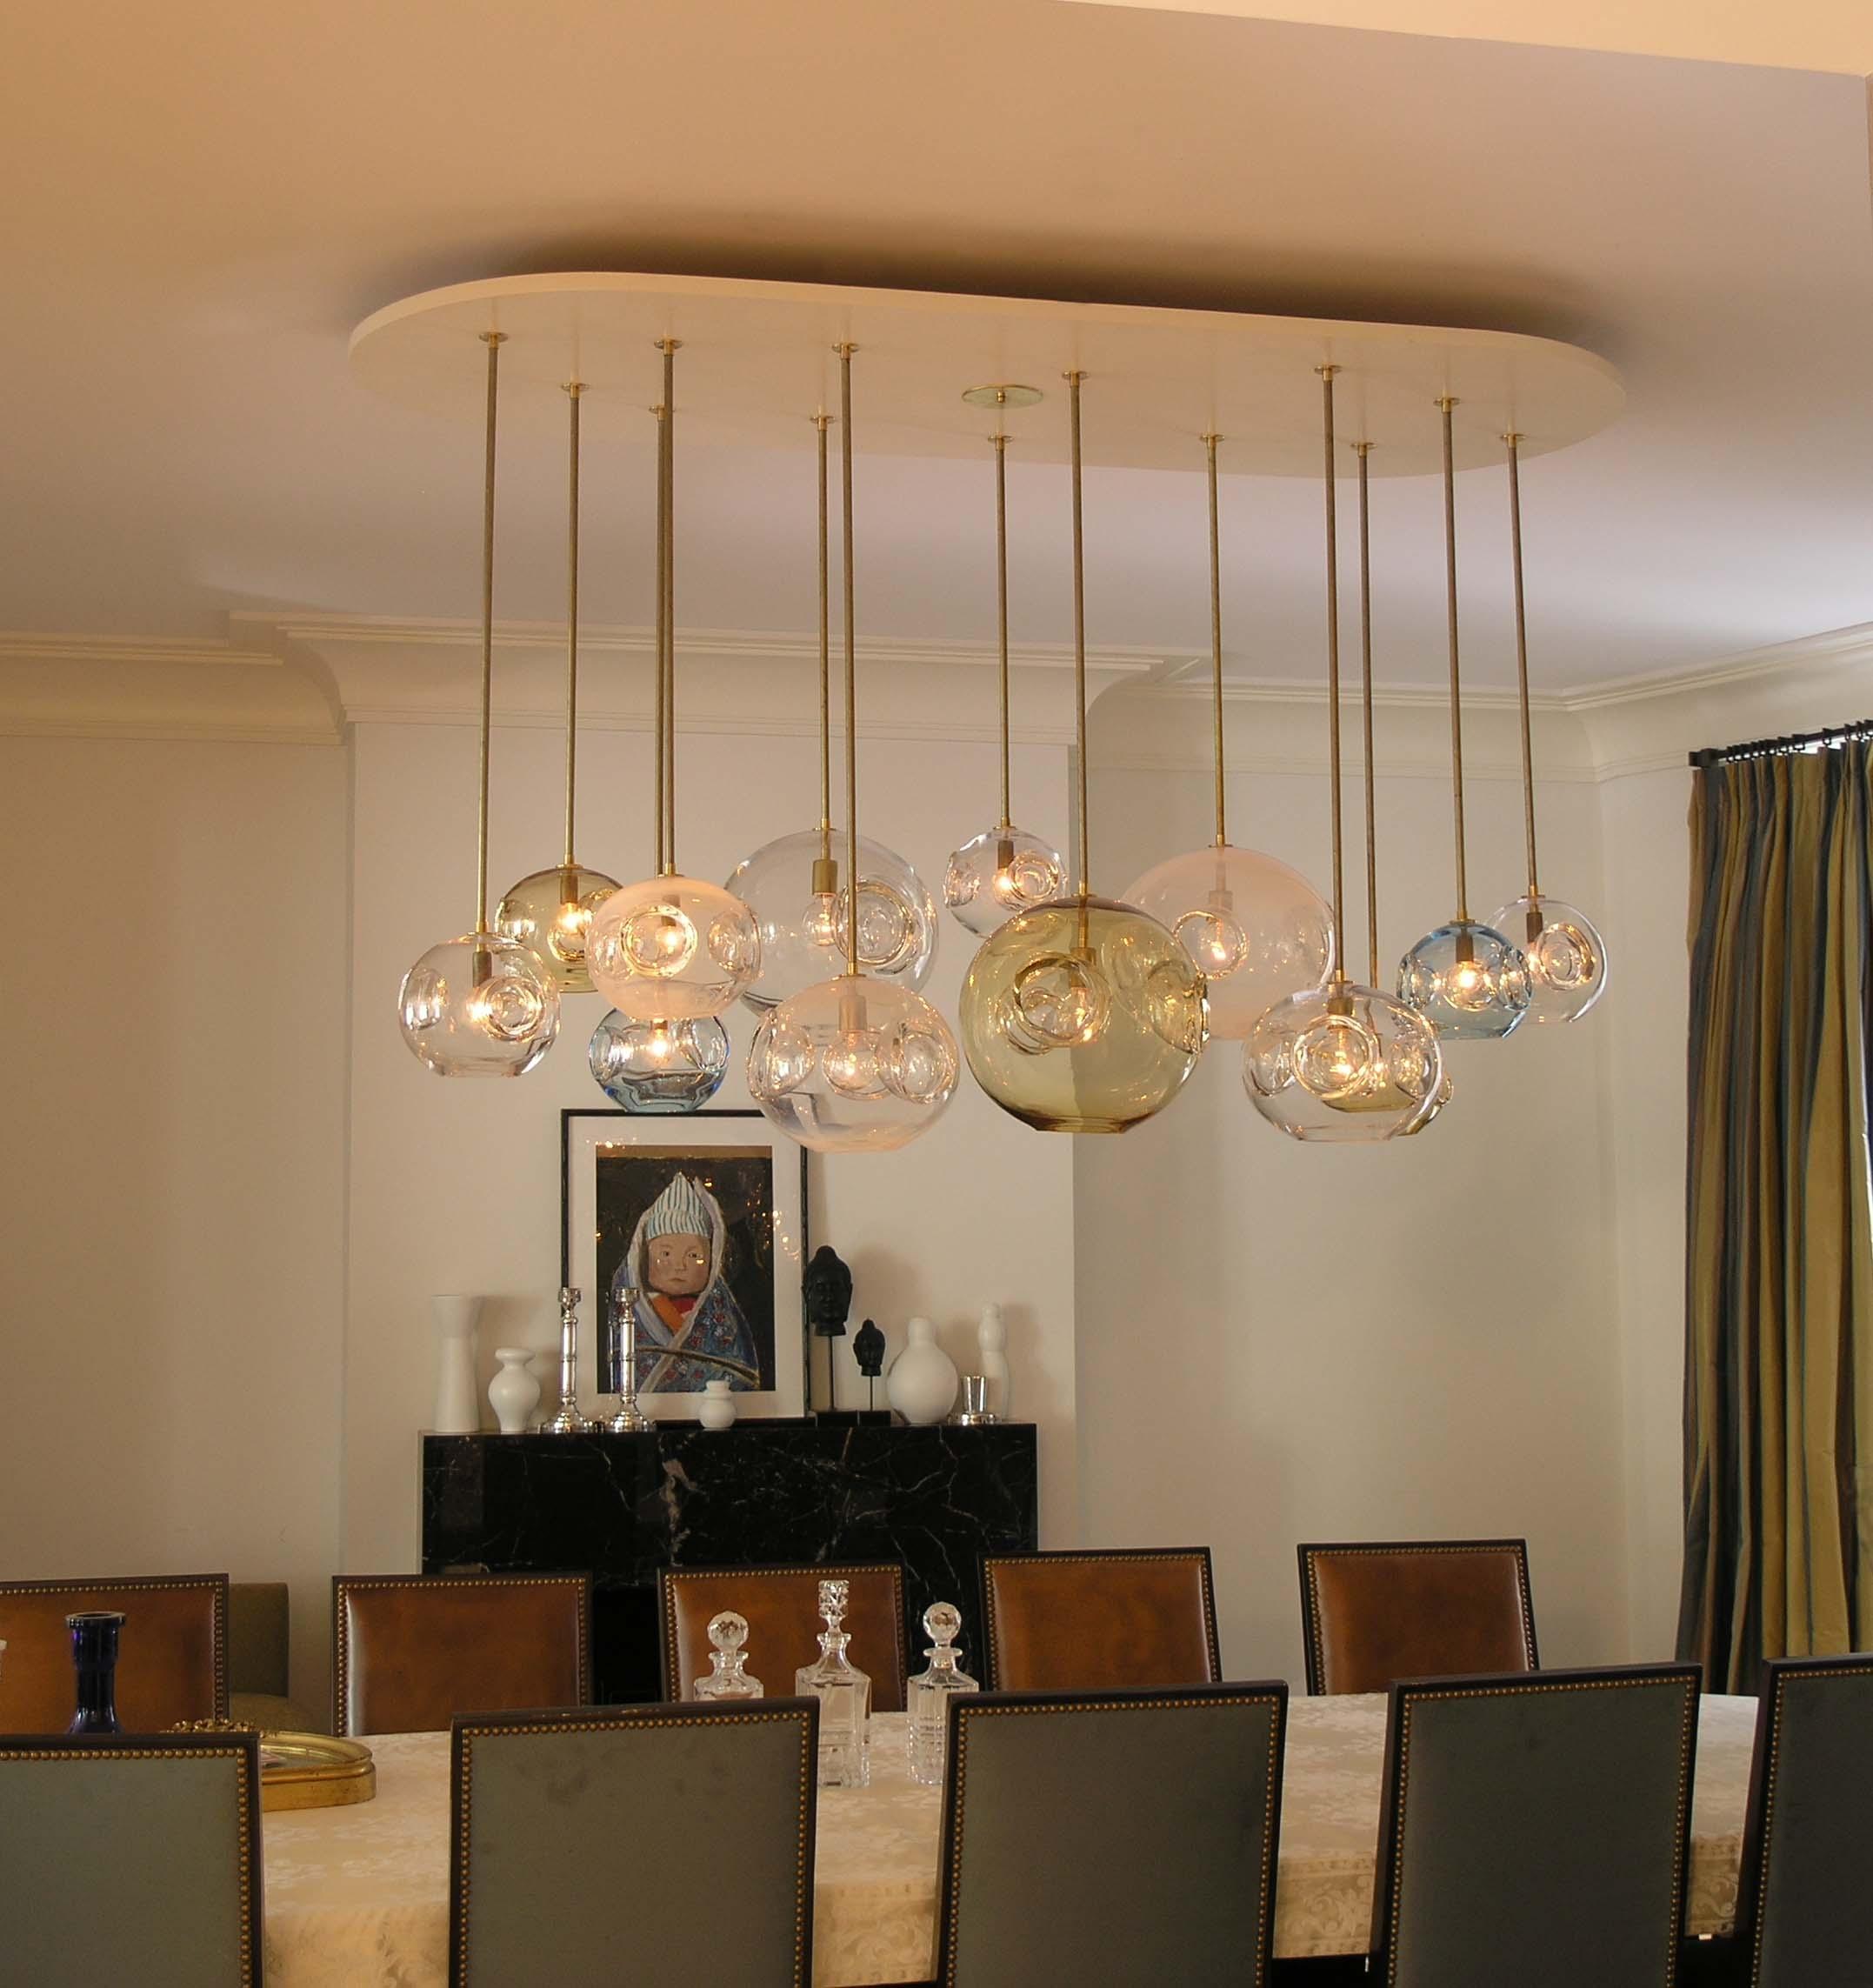 Glass Chandeliers For Dining Room: 15 Photos Long Hanging Chandeliers